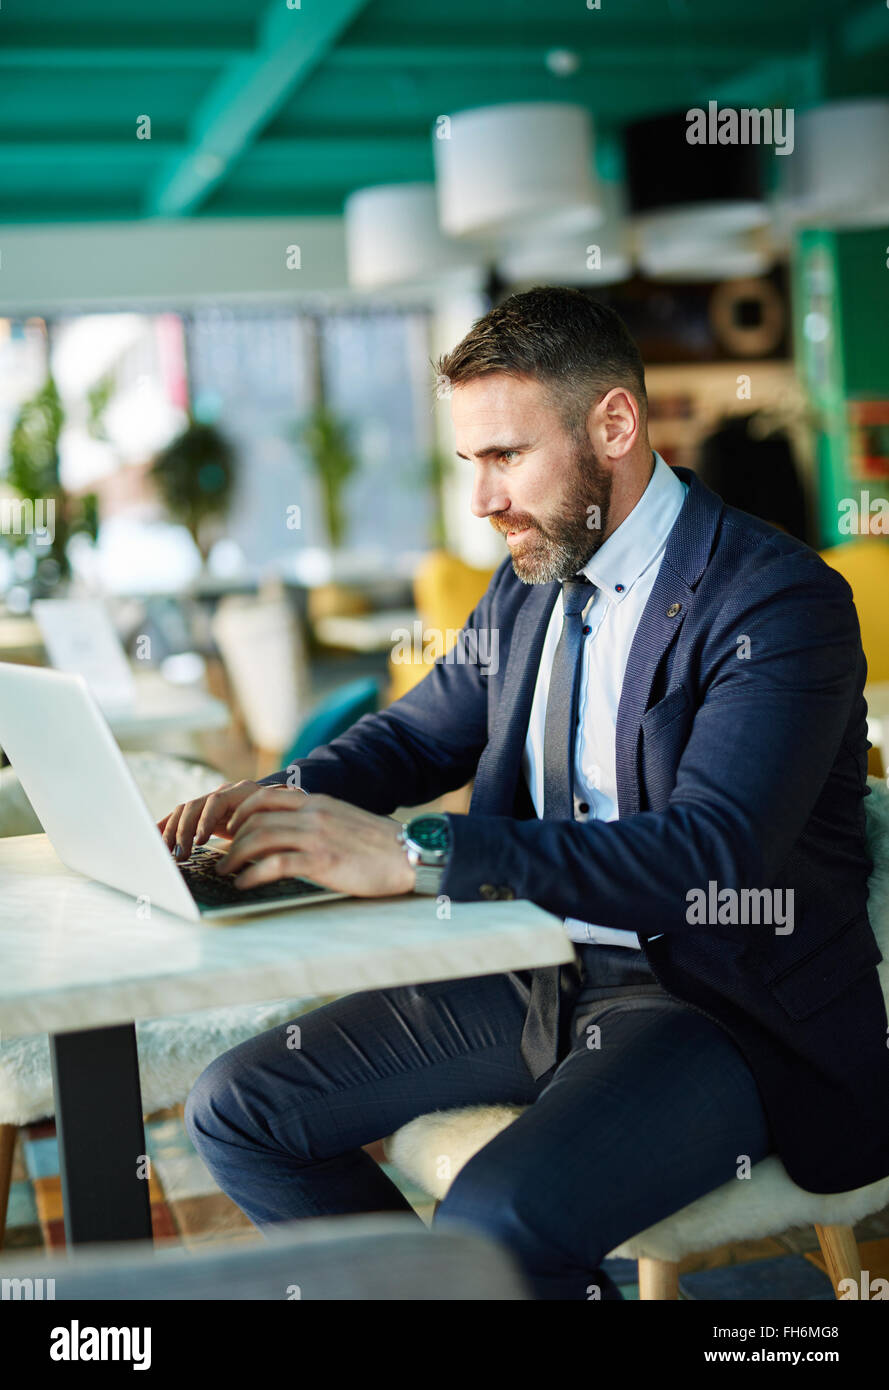 Contemporary businessman networking on laptop - Stock Image